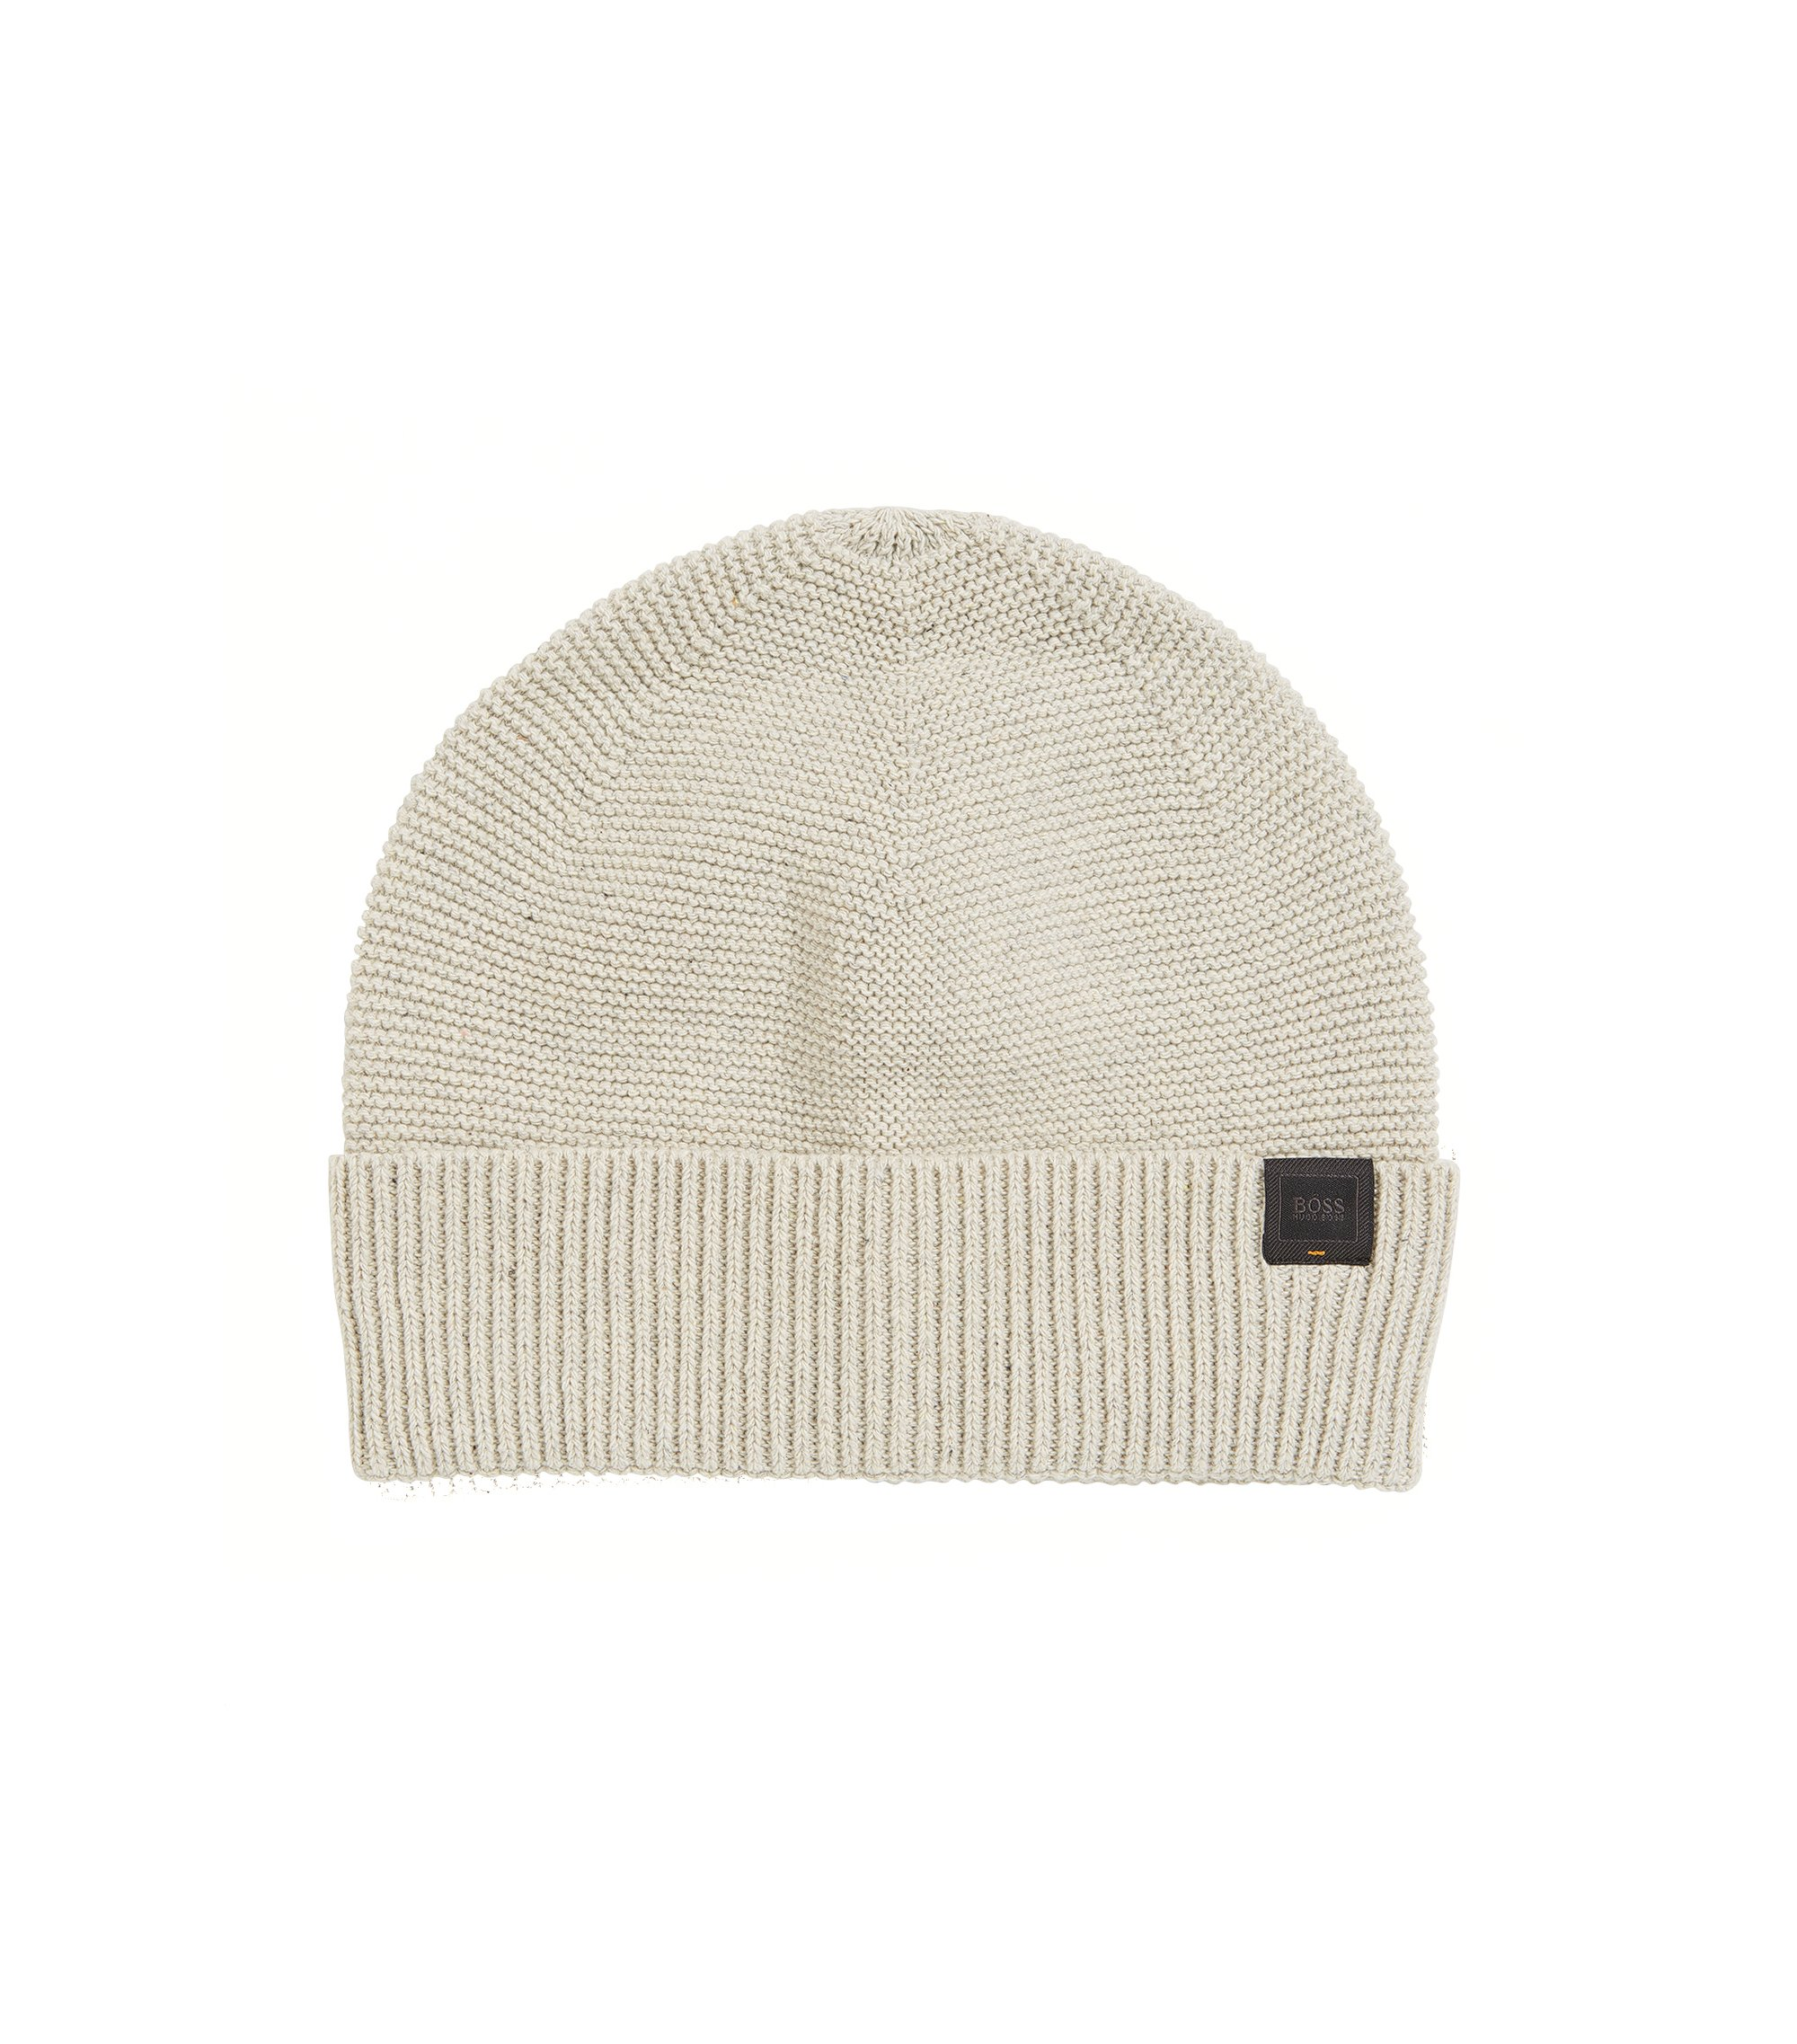 Italian-made knitted beanie hat in a cotton blend, Natural